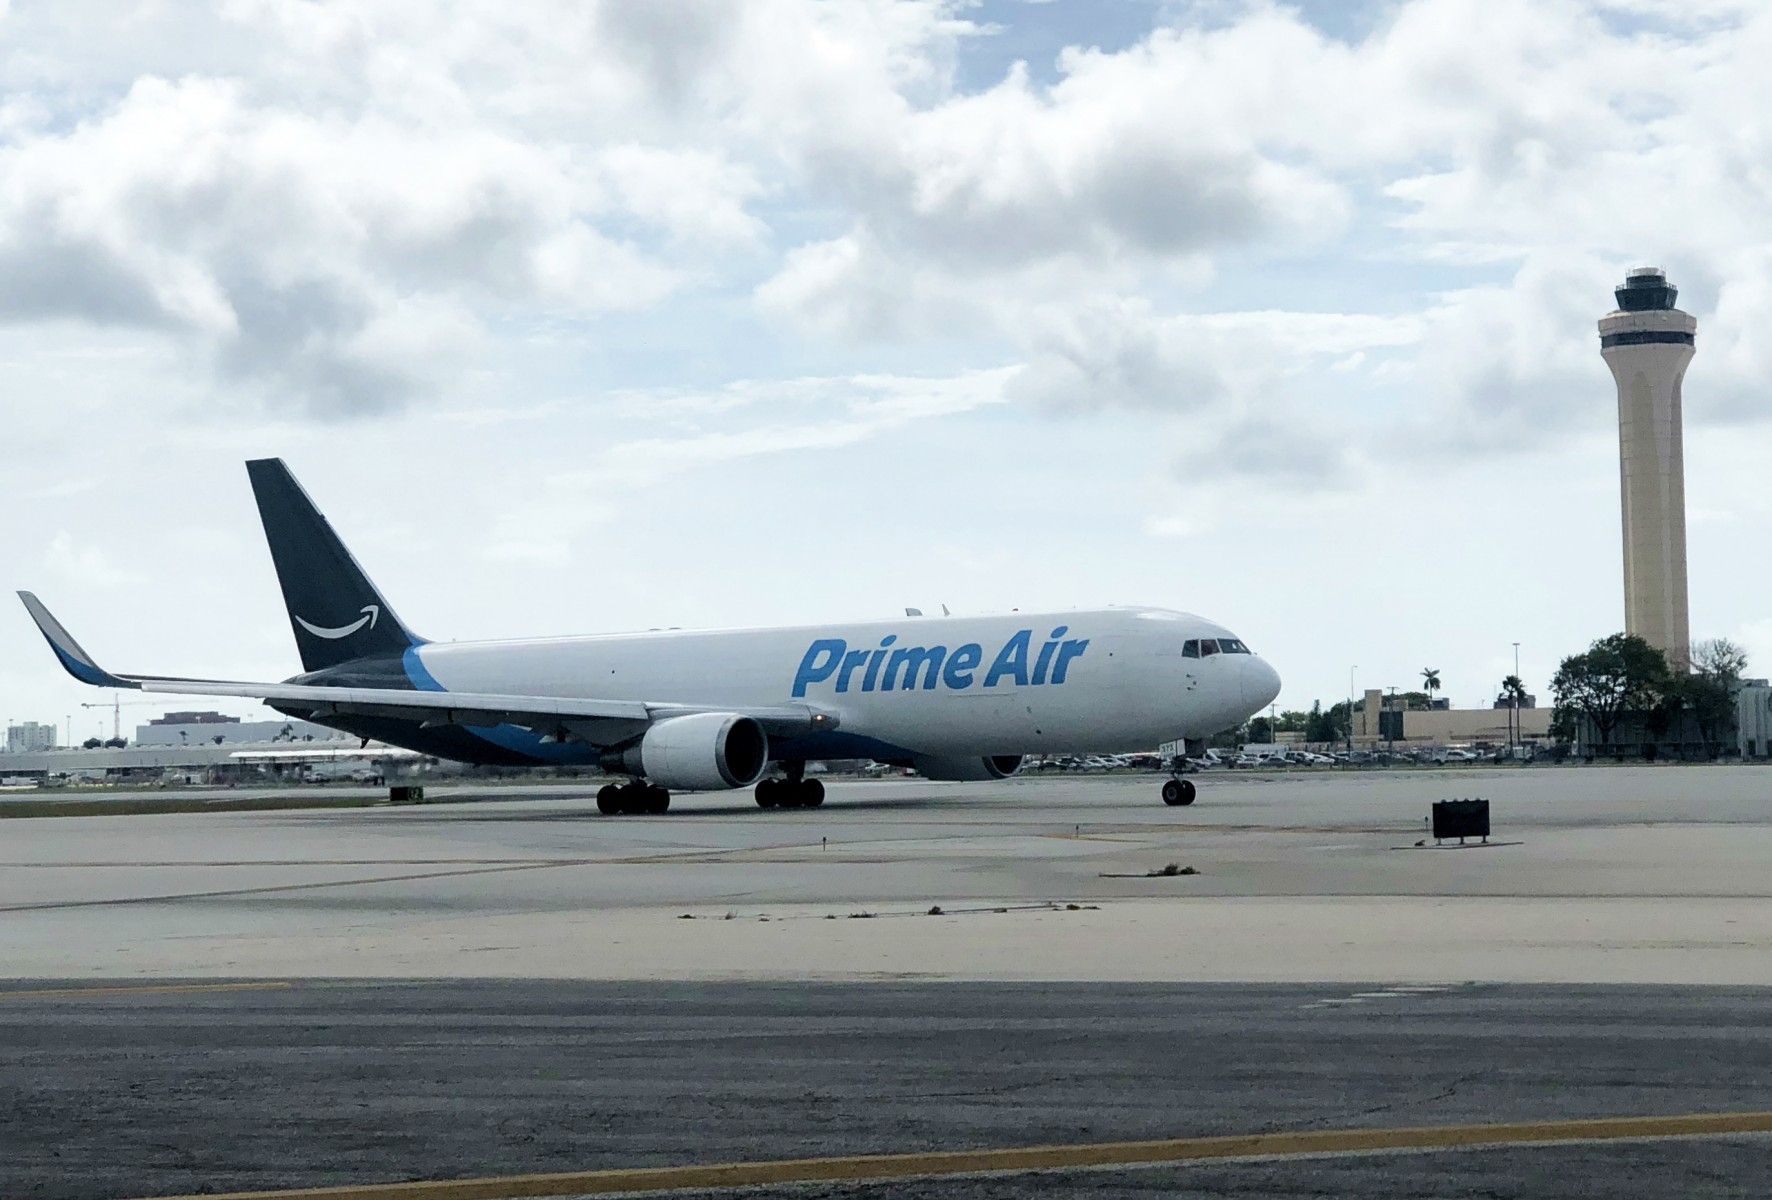 Amazon Air at MIA edited